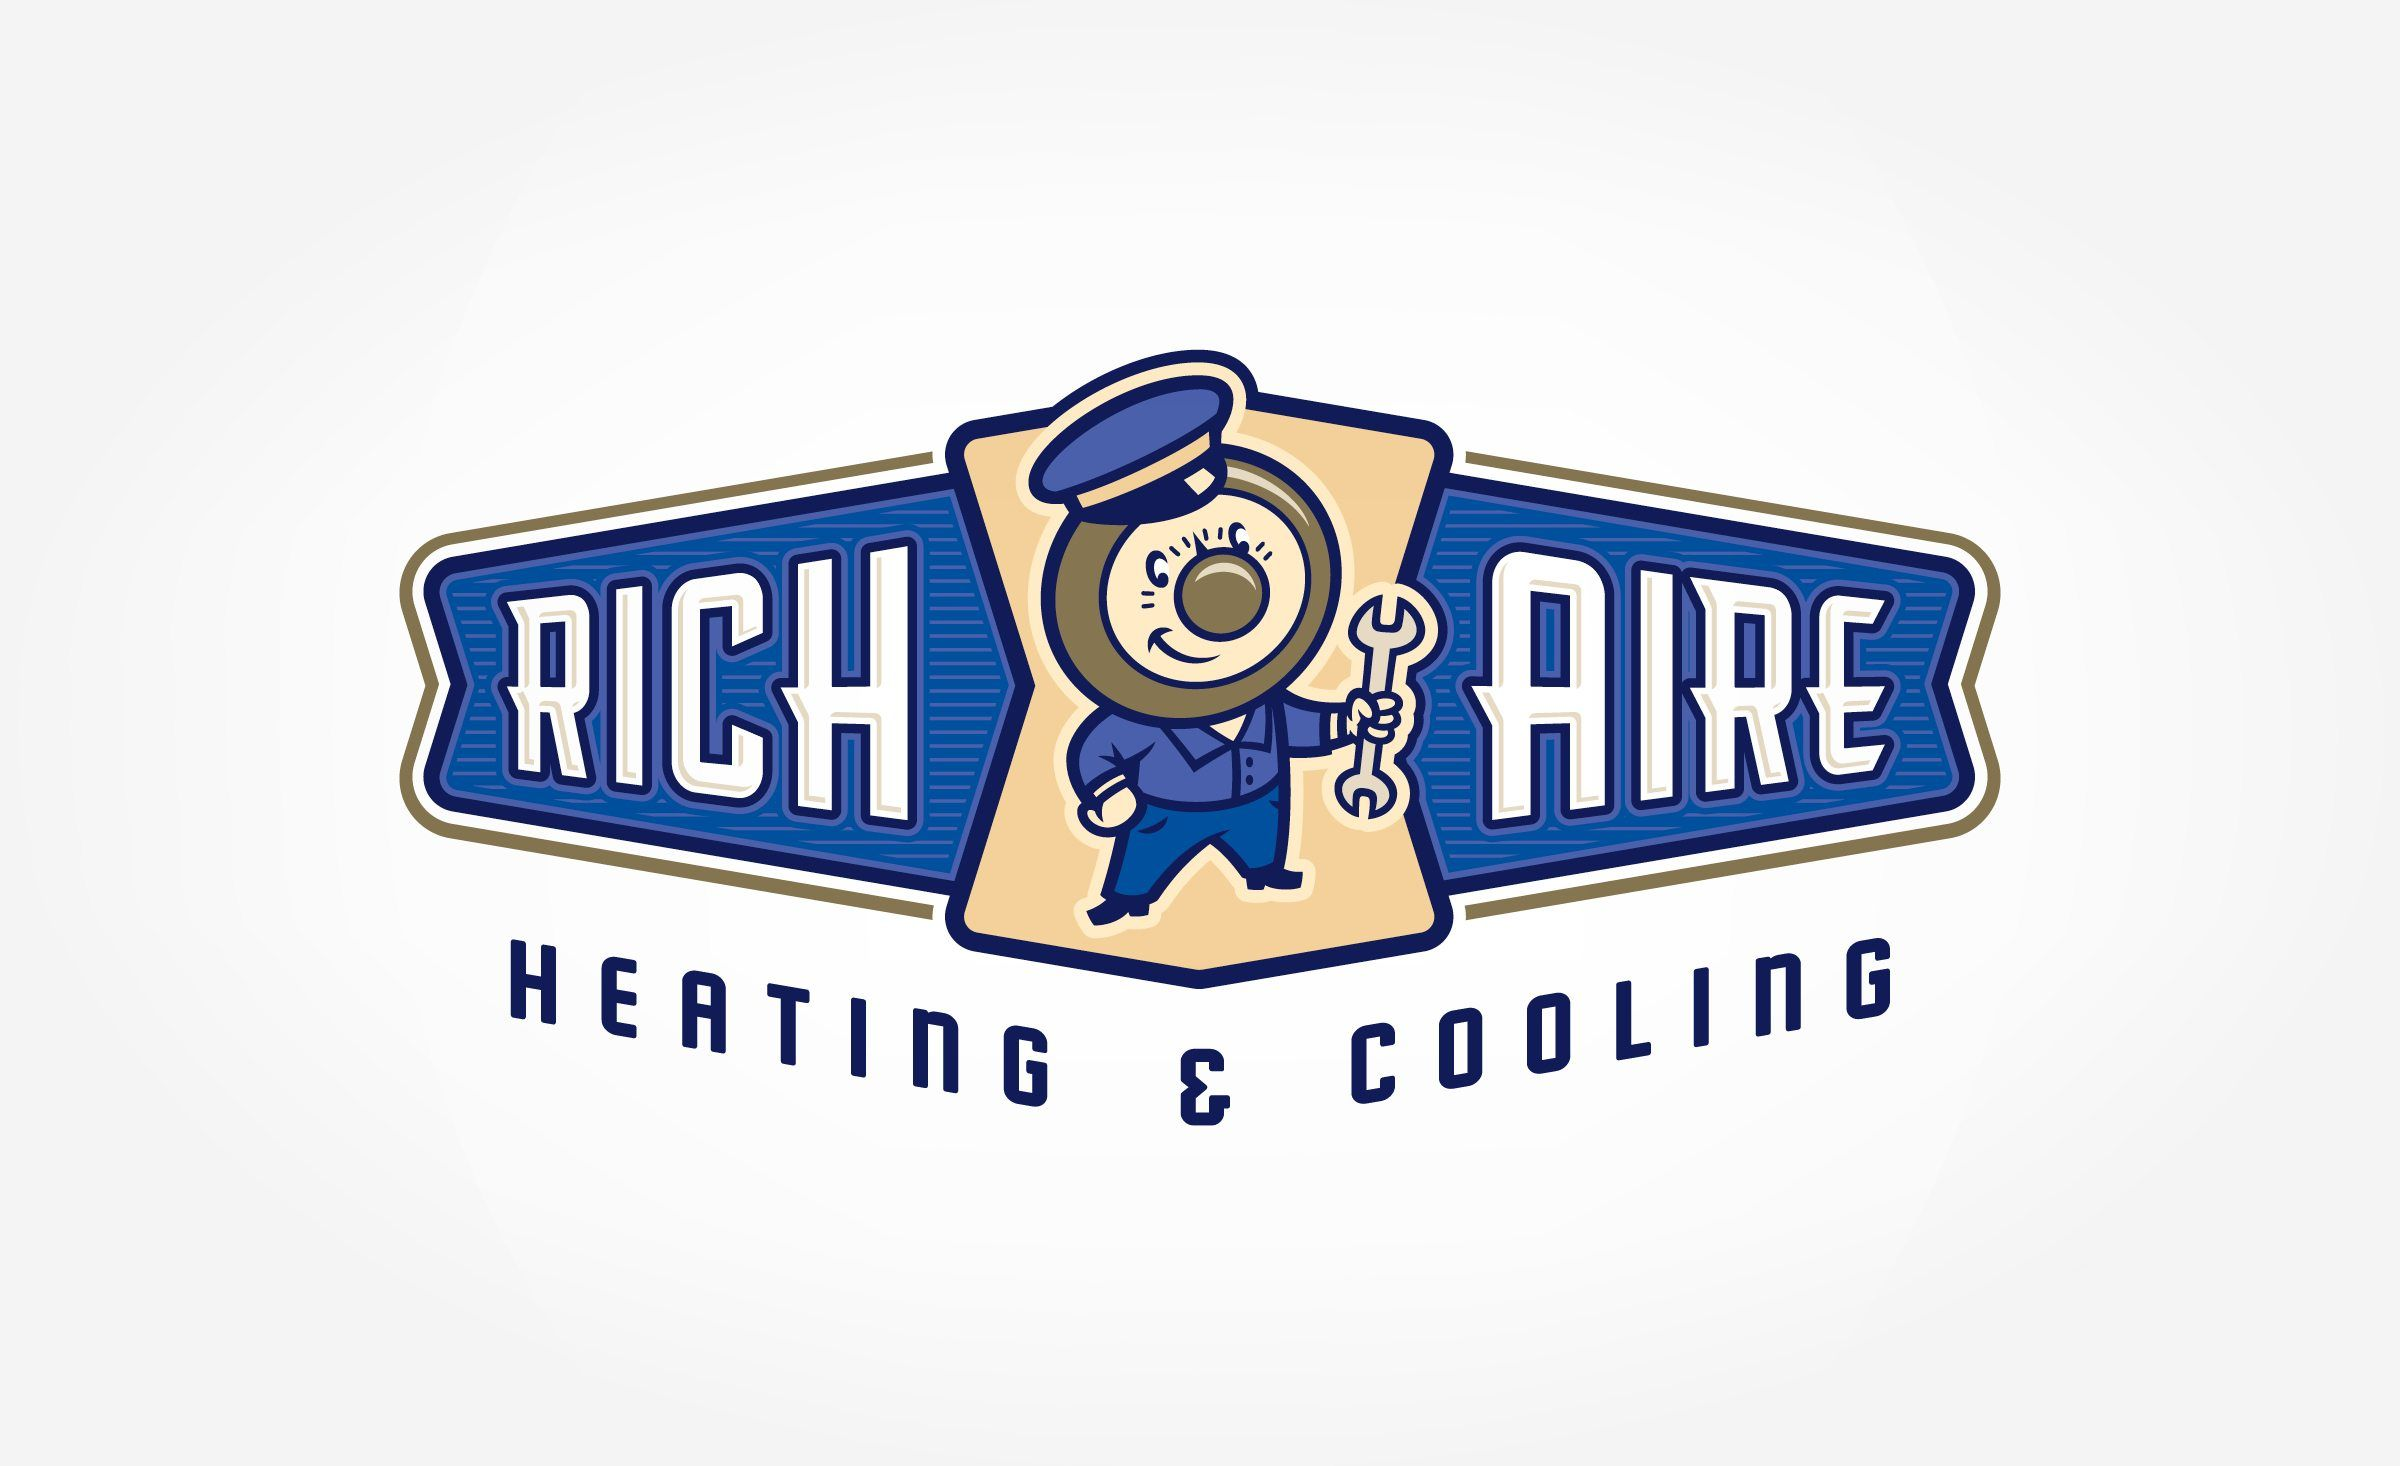 Retro Branding And Mascot Logo Design For Heating And Cooling